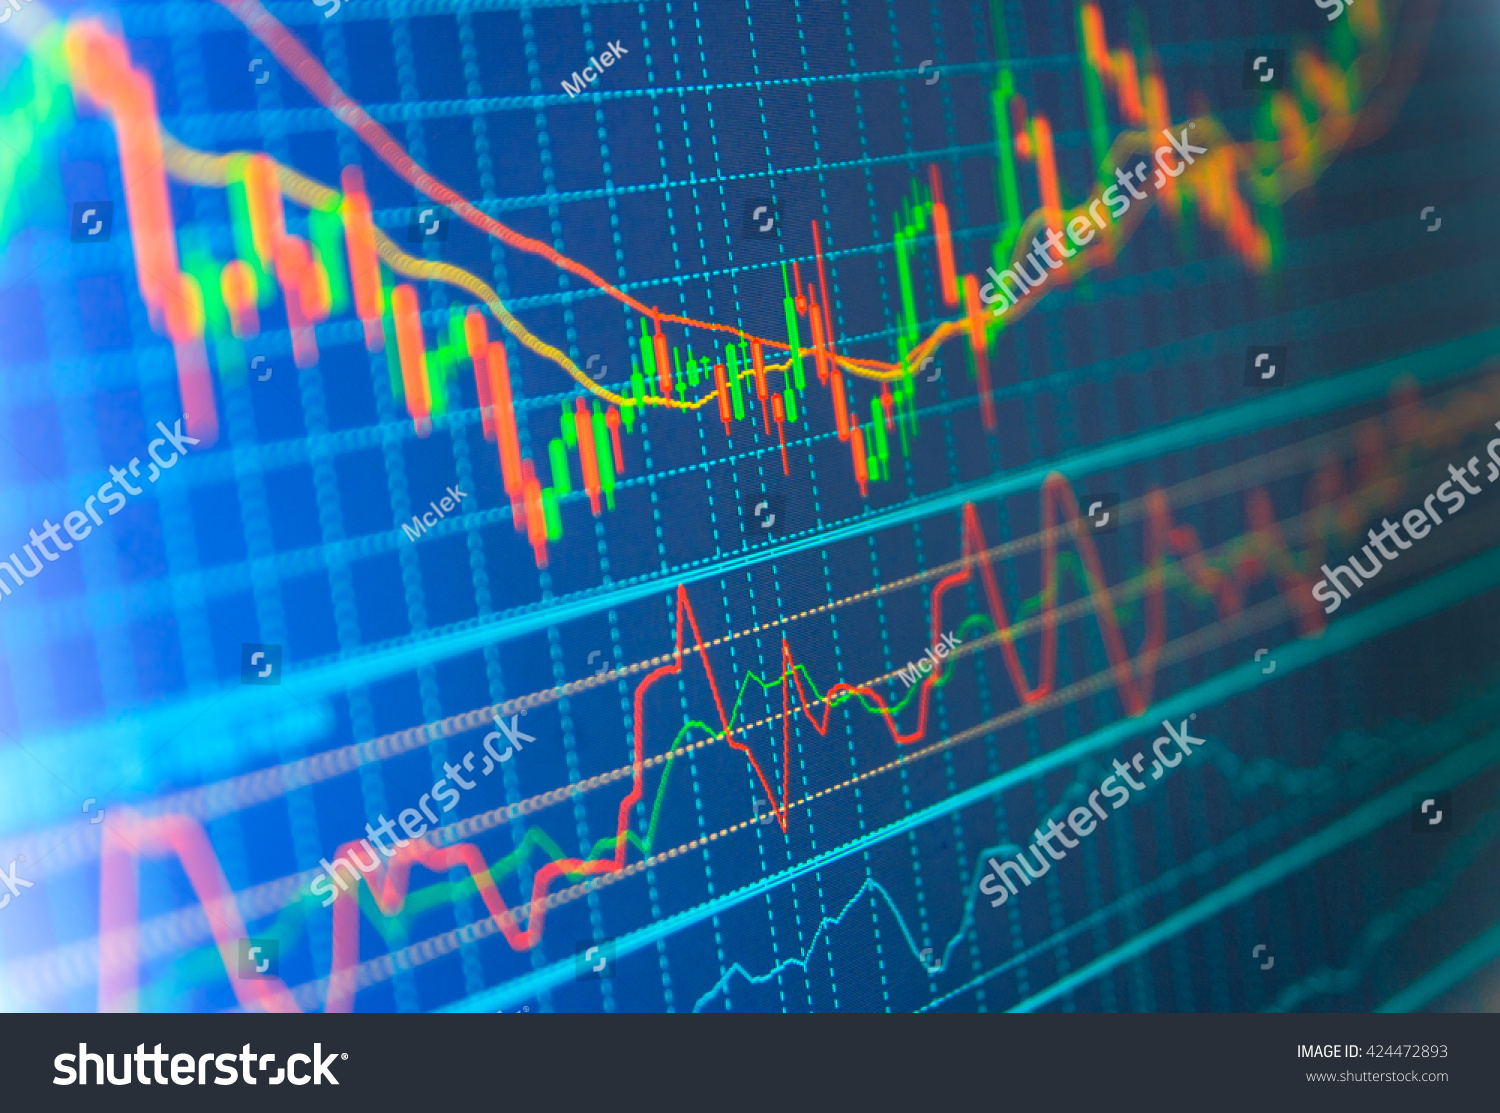 Forex metastock data download